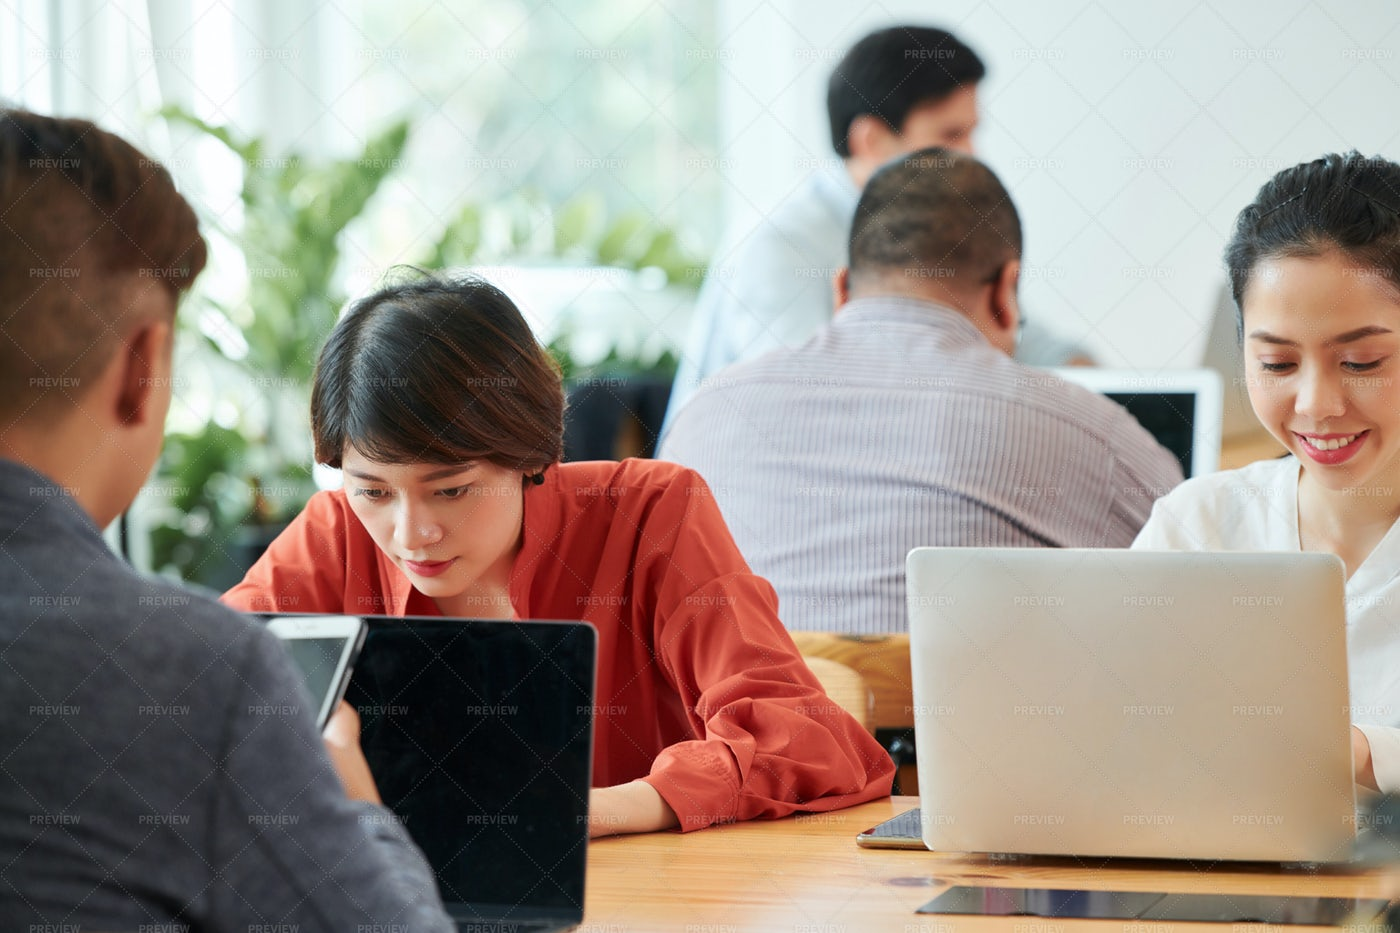 People Using Laptops At Office: Stock Photos